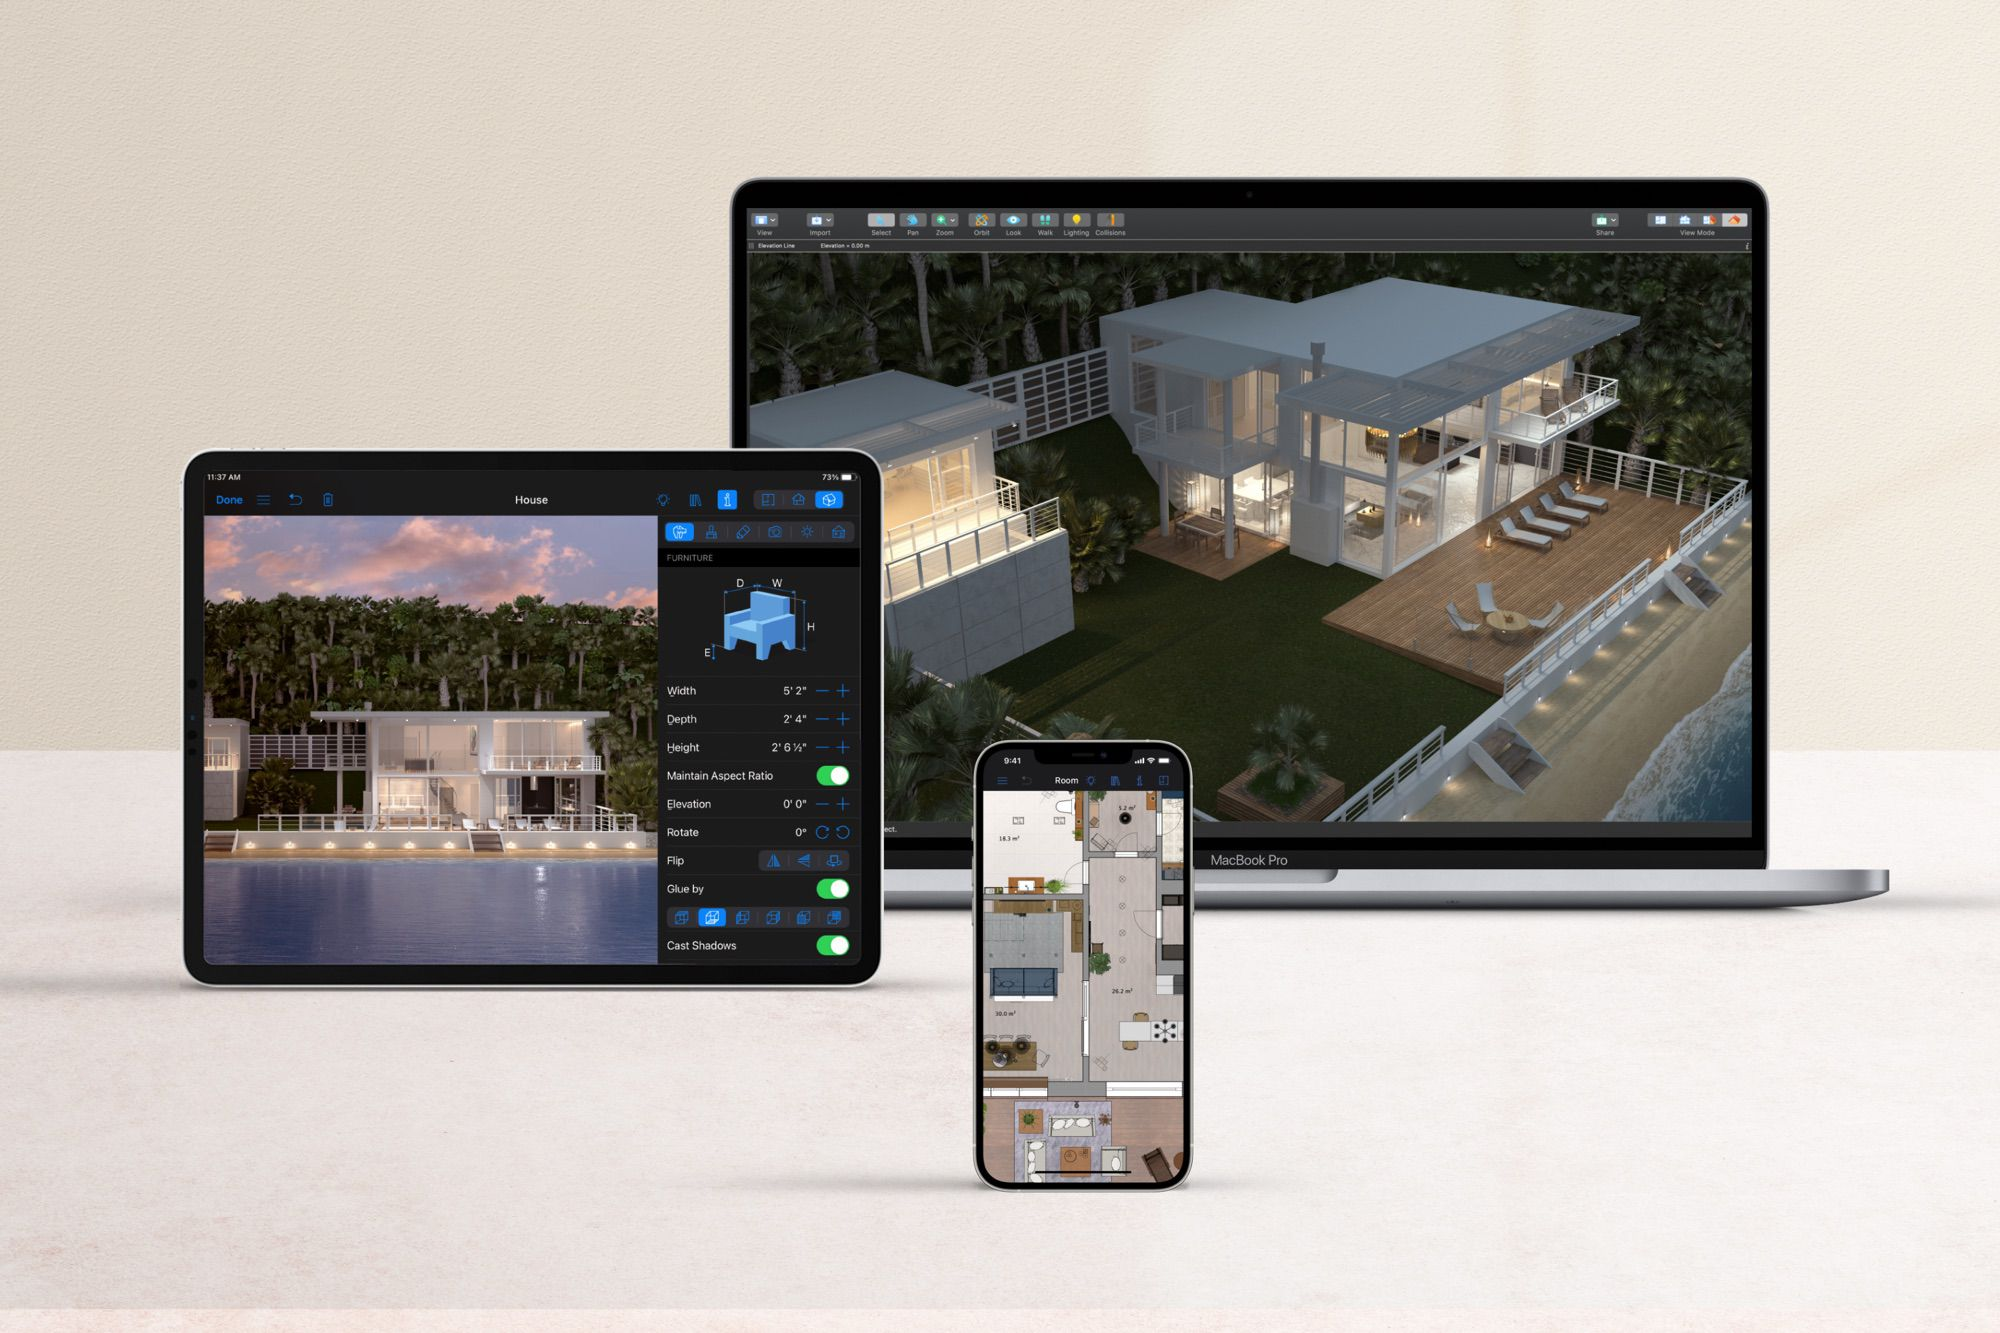 MacRumors Giveaway: Win an M1 11-Inch iPad Pro and Apple Pencil From Live Home 3D – MacRumors